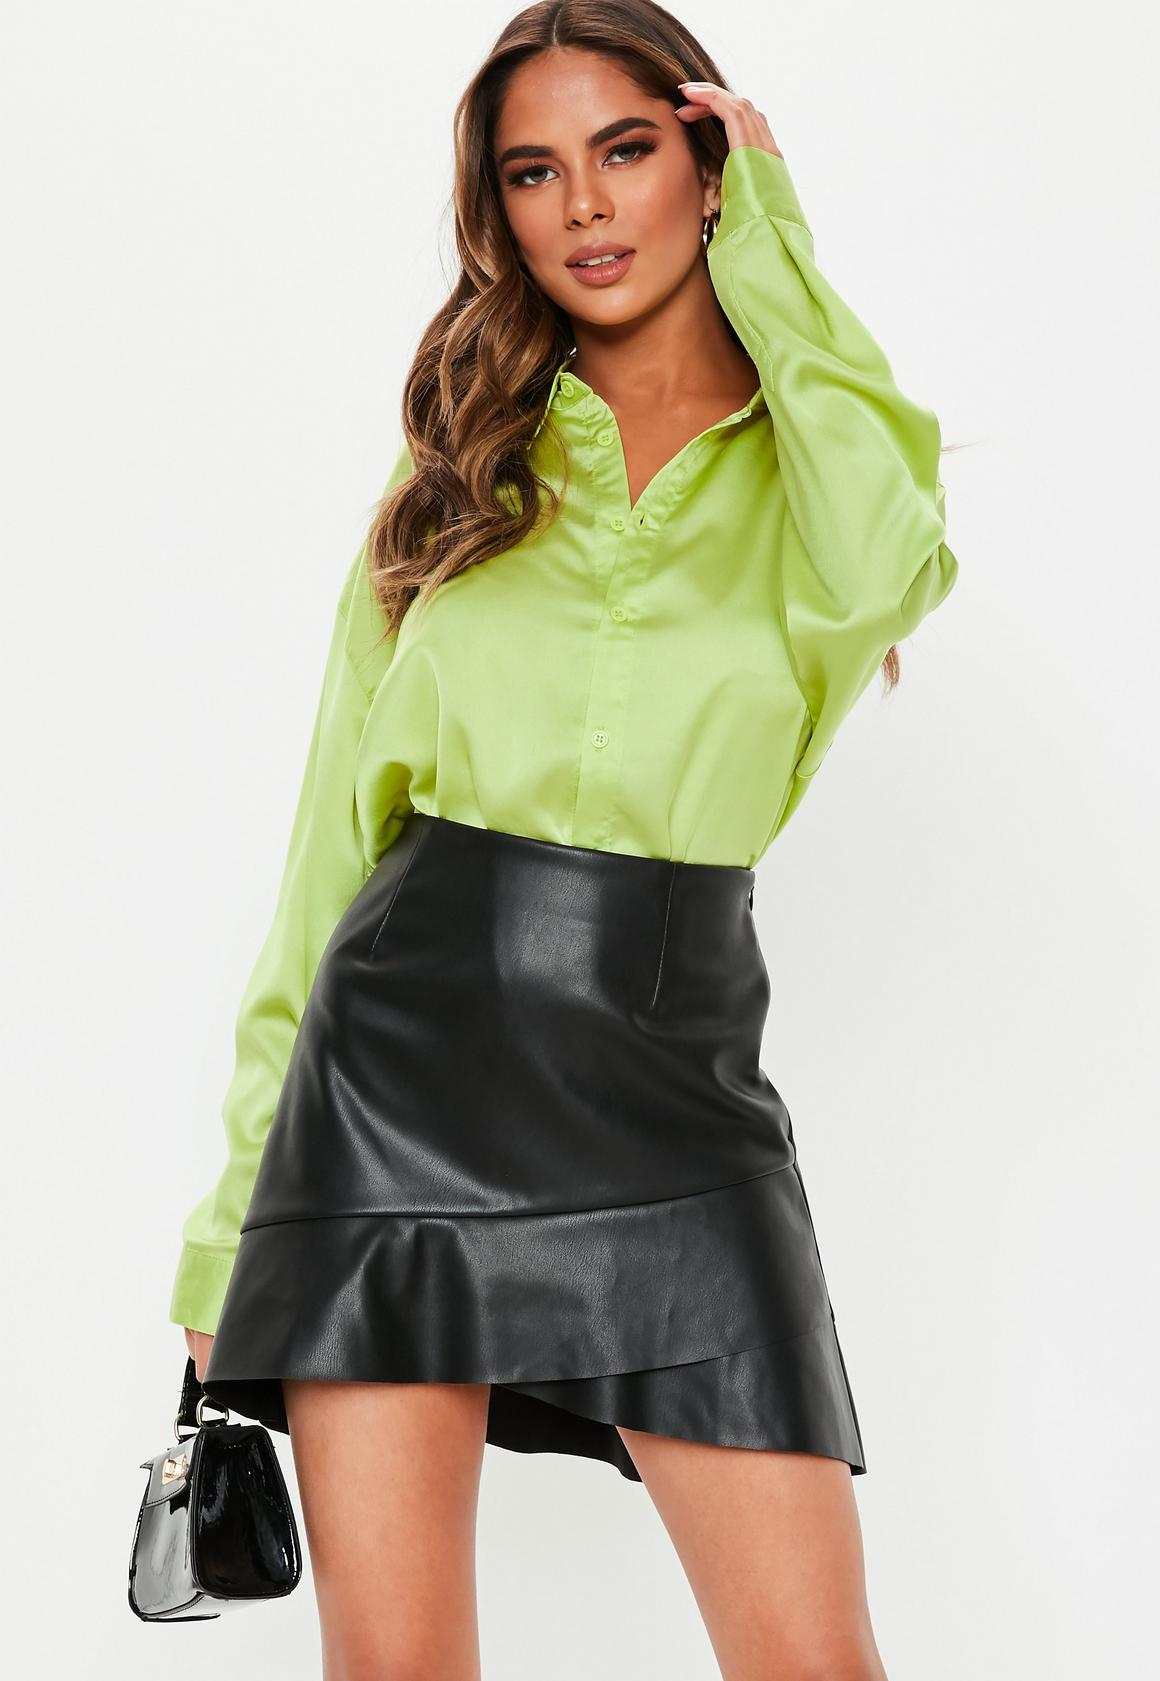 20a6ea04d6 Petite Ave | Clothing for Women 5'4'' and Under